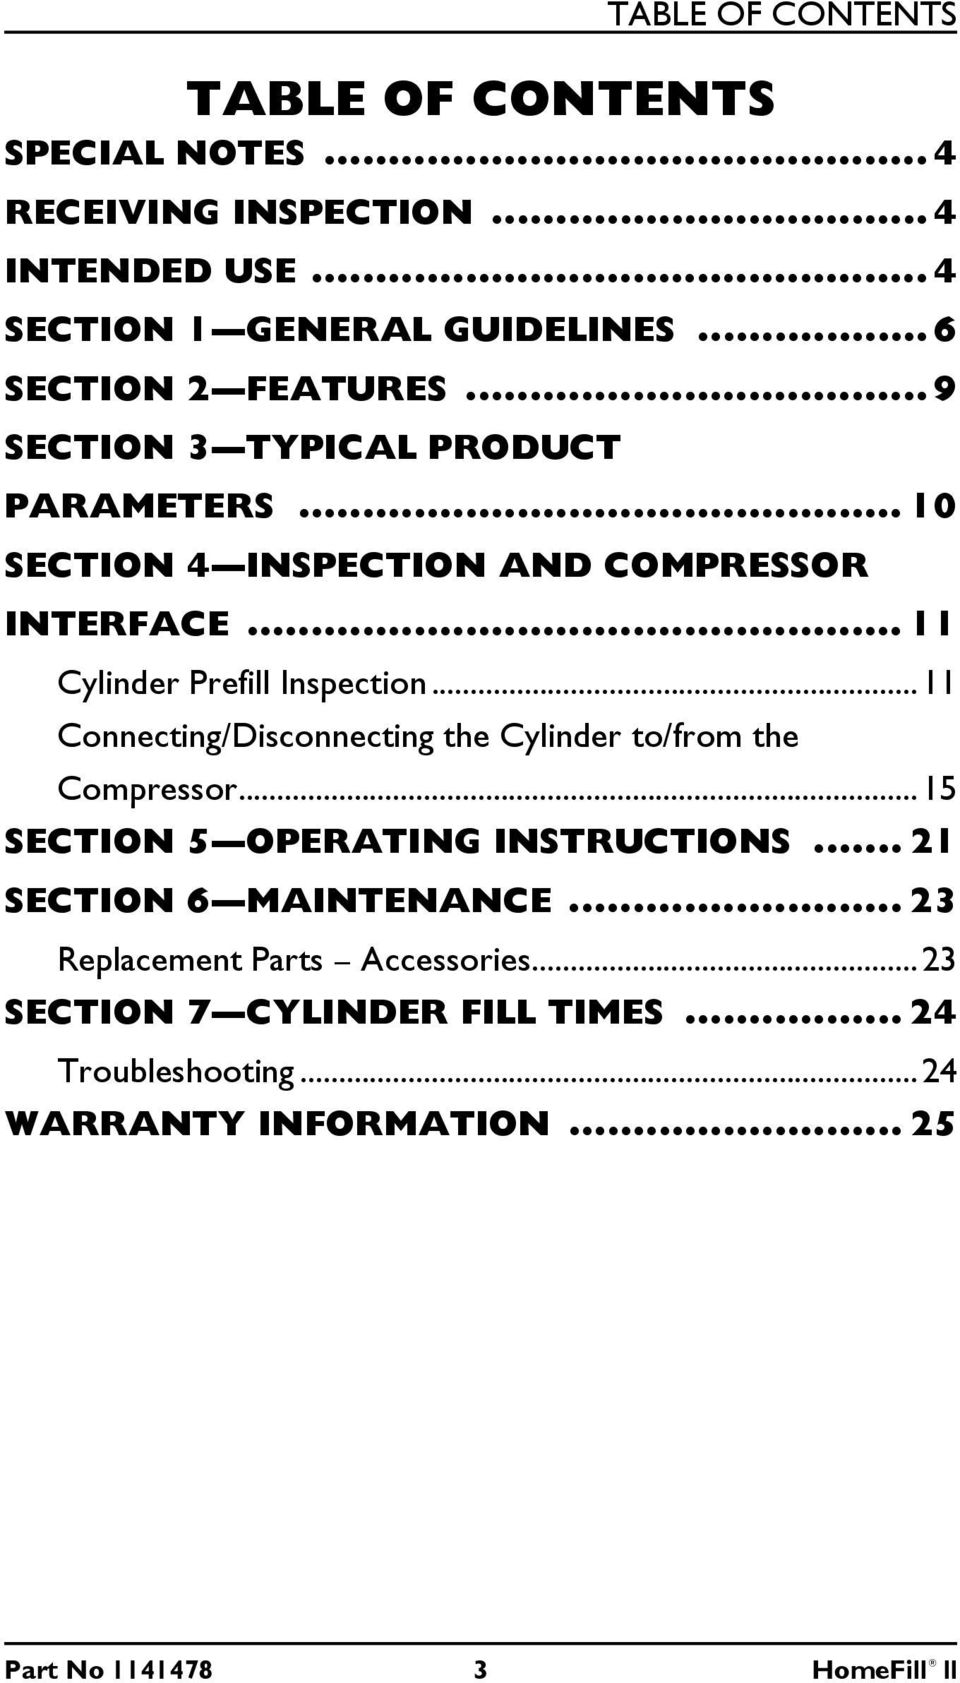 .. 11 Cylinder Prefill Inspection...11 Connecting/Disconnecting the Cylinder to/from the Compressor...15 SECTION 5 OPERATING INSTRUCTIONS.